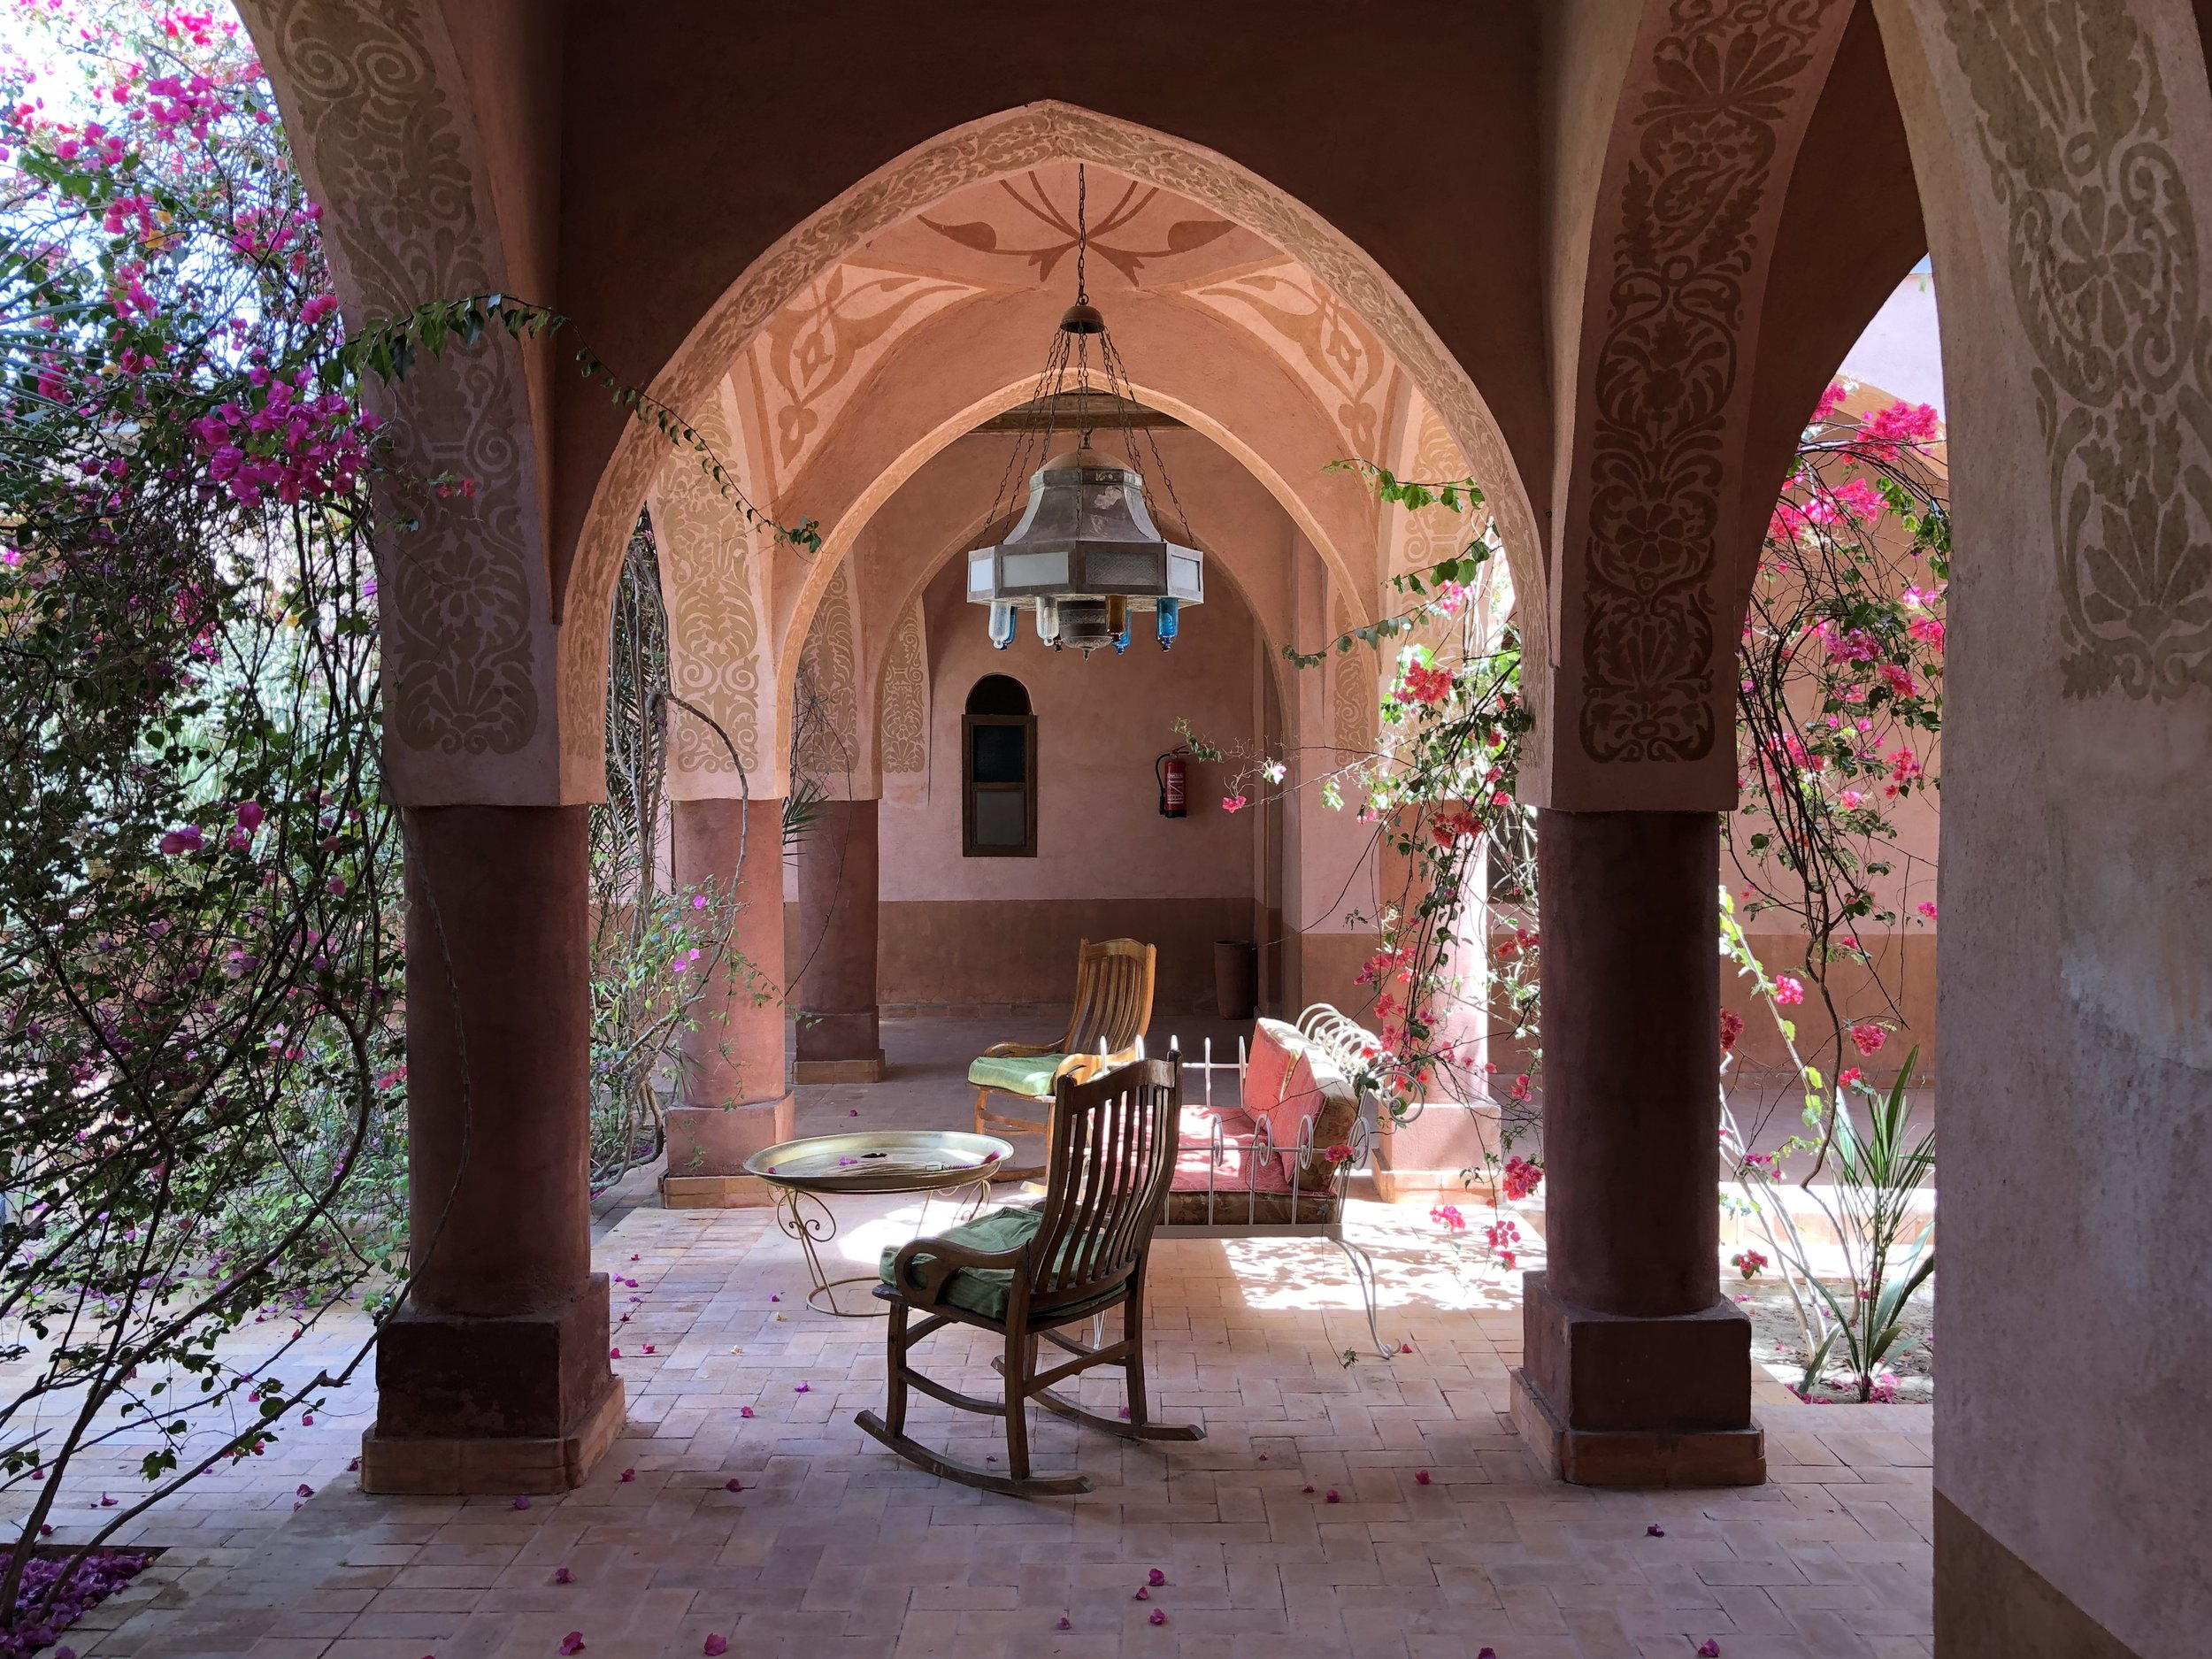 Our room opened to a courtyard filled with vibrant flowering bougainvillea, a fountain, and a sitting area